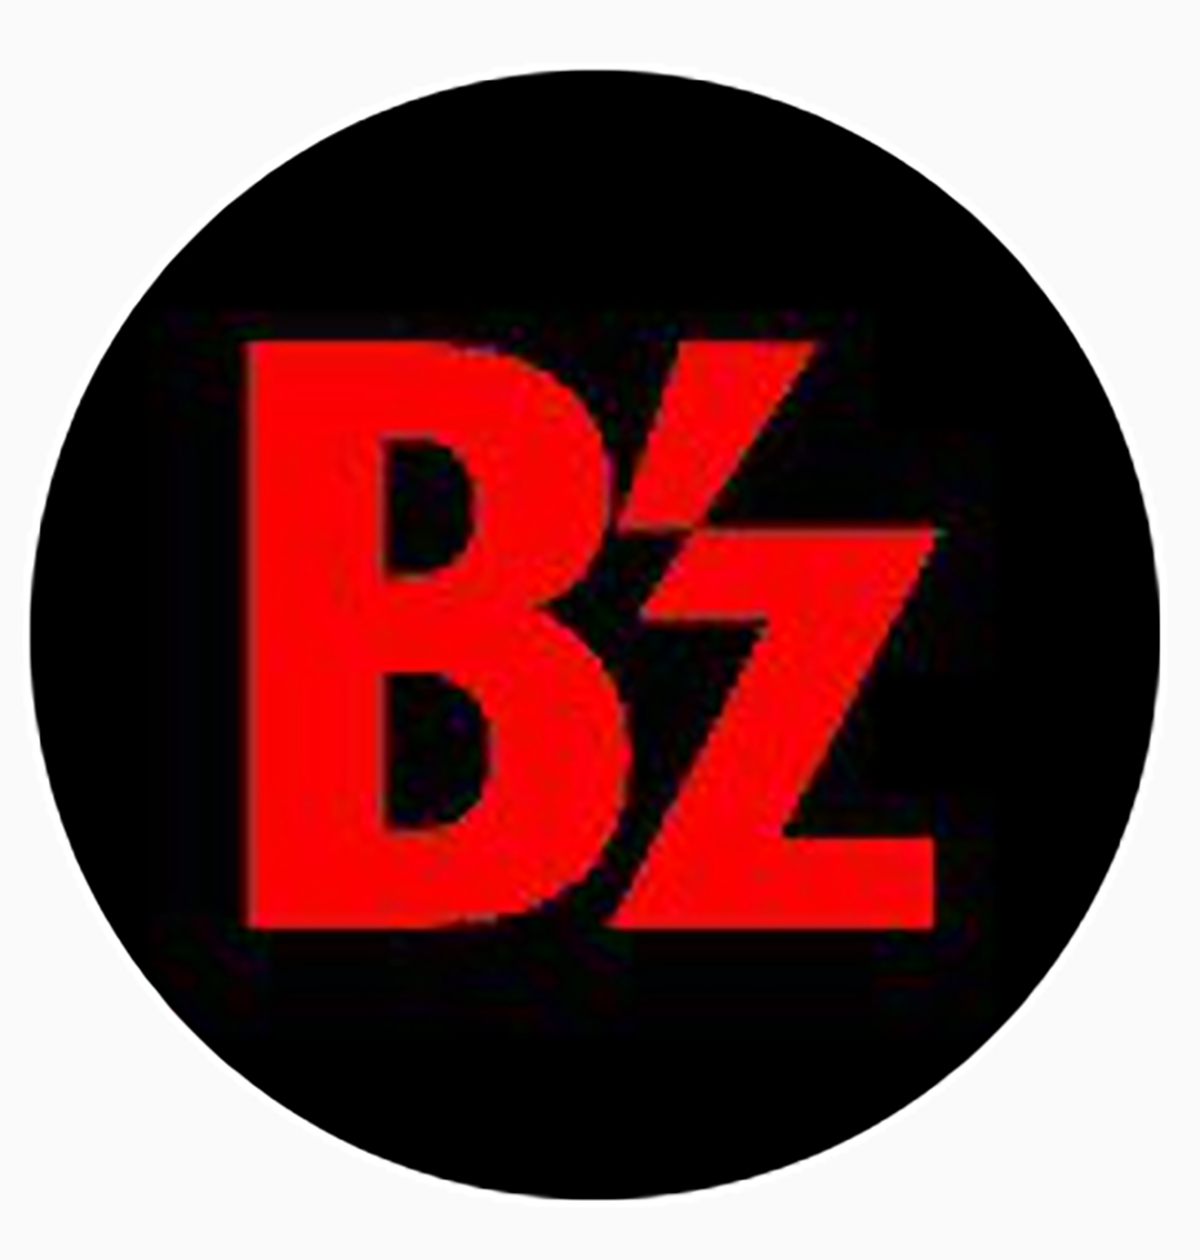 B'z Official Instagramのロゴ